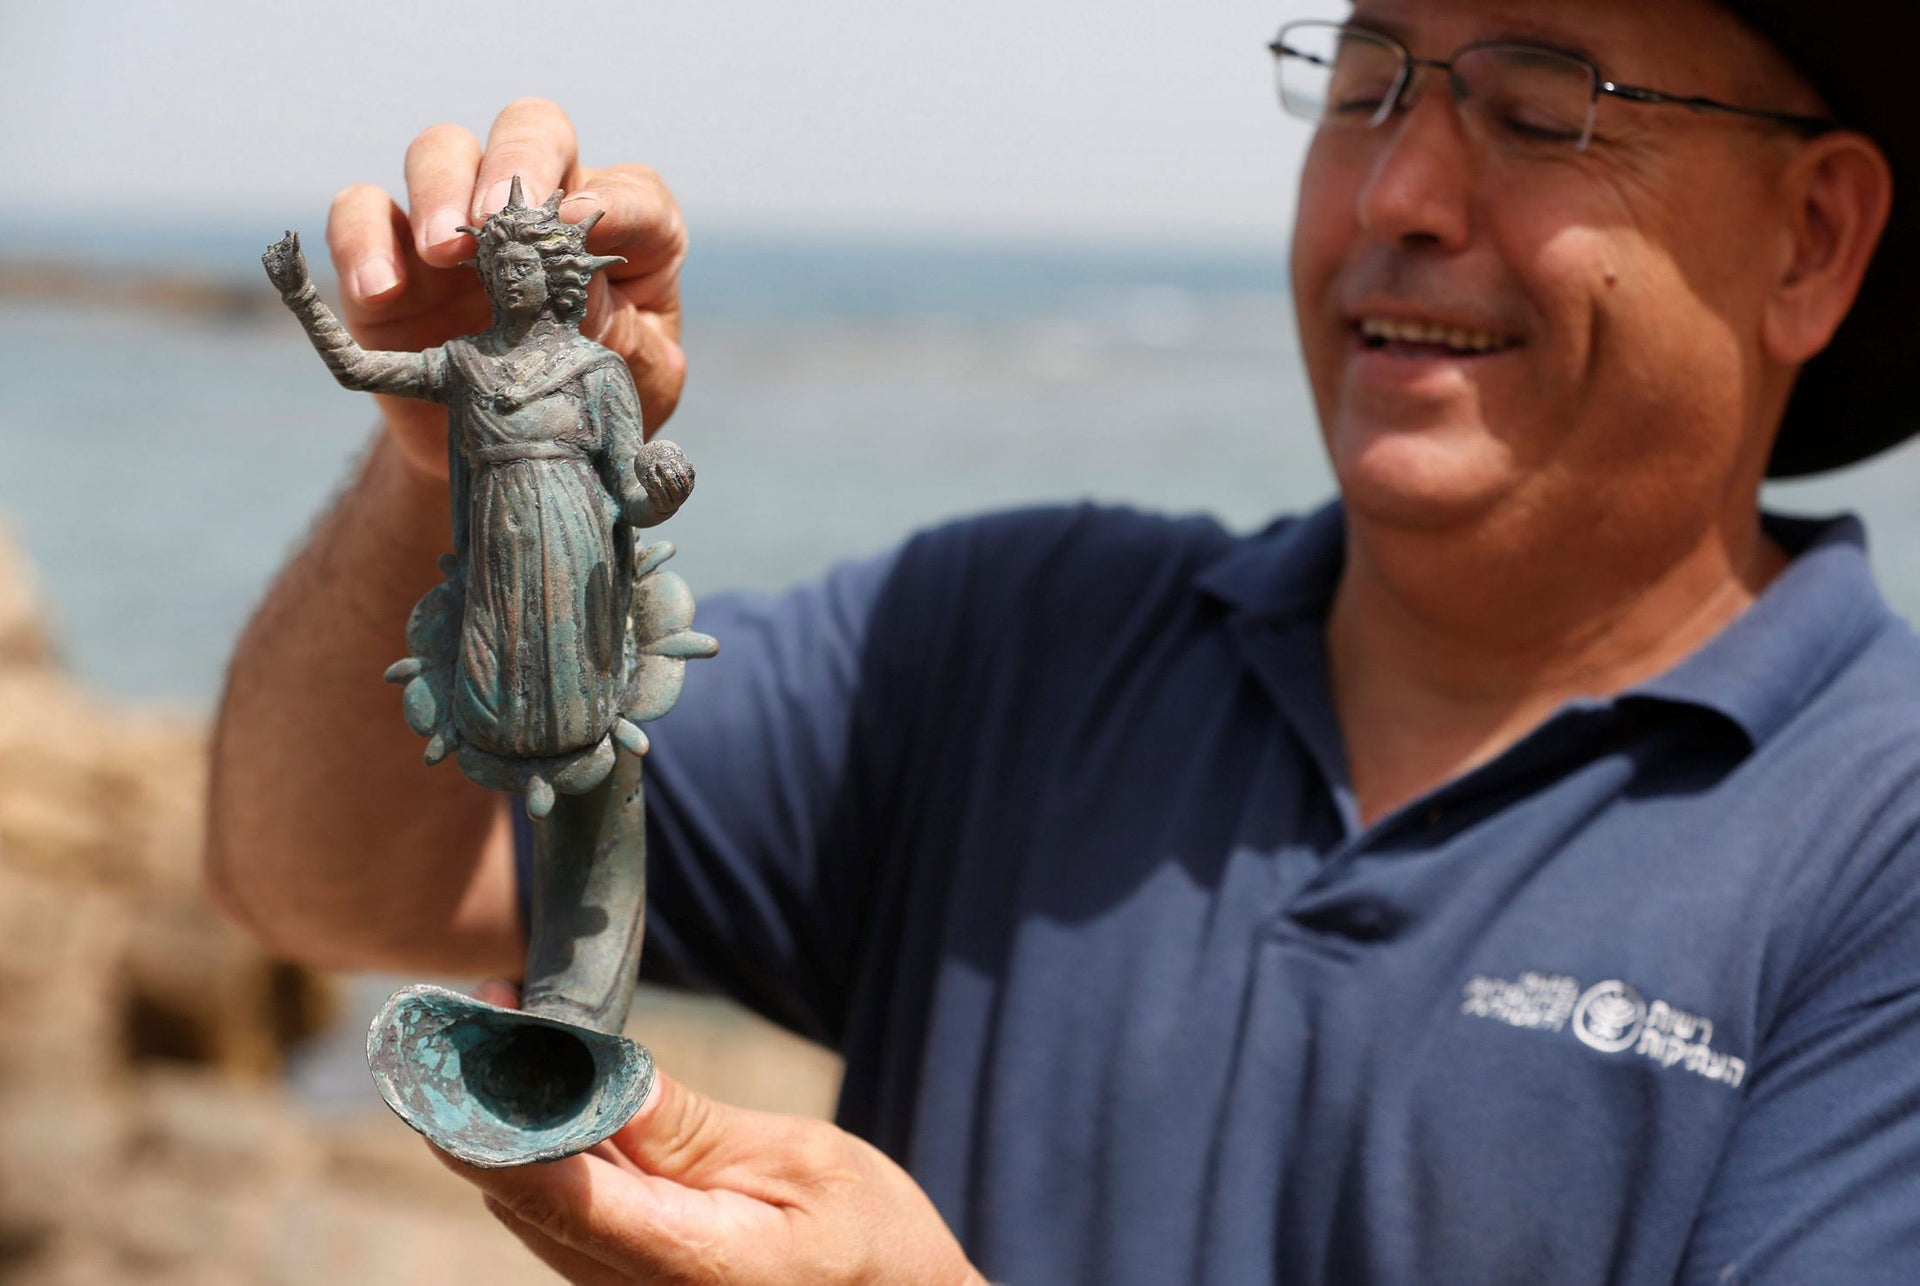 Jacob Sharvit, director of the Marine Archaeology Unit of the Israel Antiquities Authority, holds a part of a statue, which the IAA estimates to be around 1600 years old, after it was recovered from a merchant ship in Caesarea, May 16, 2016.